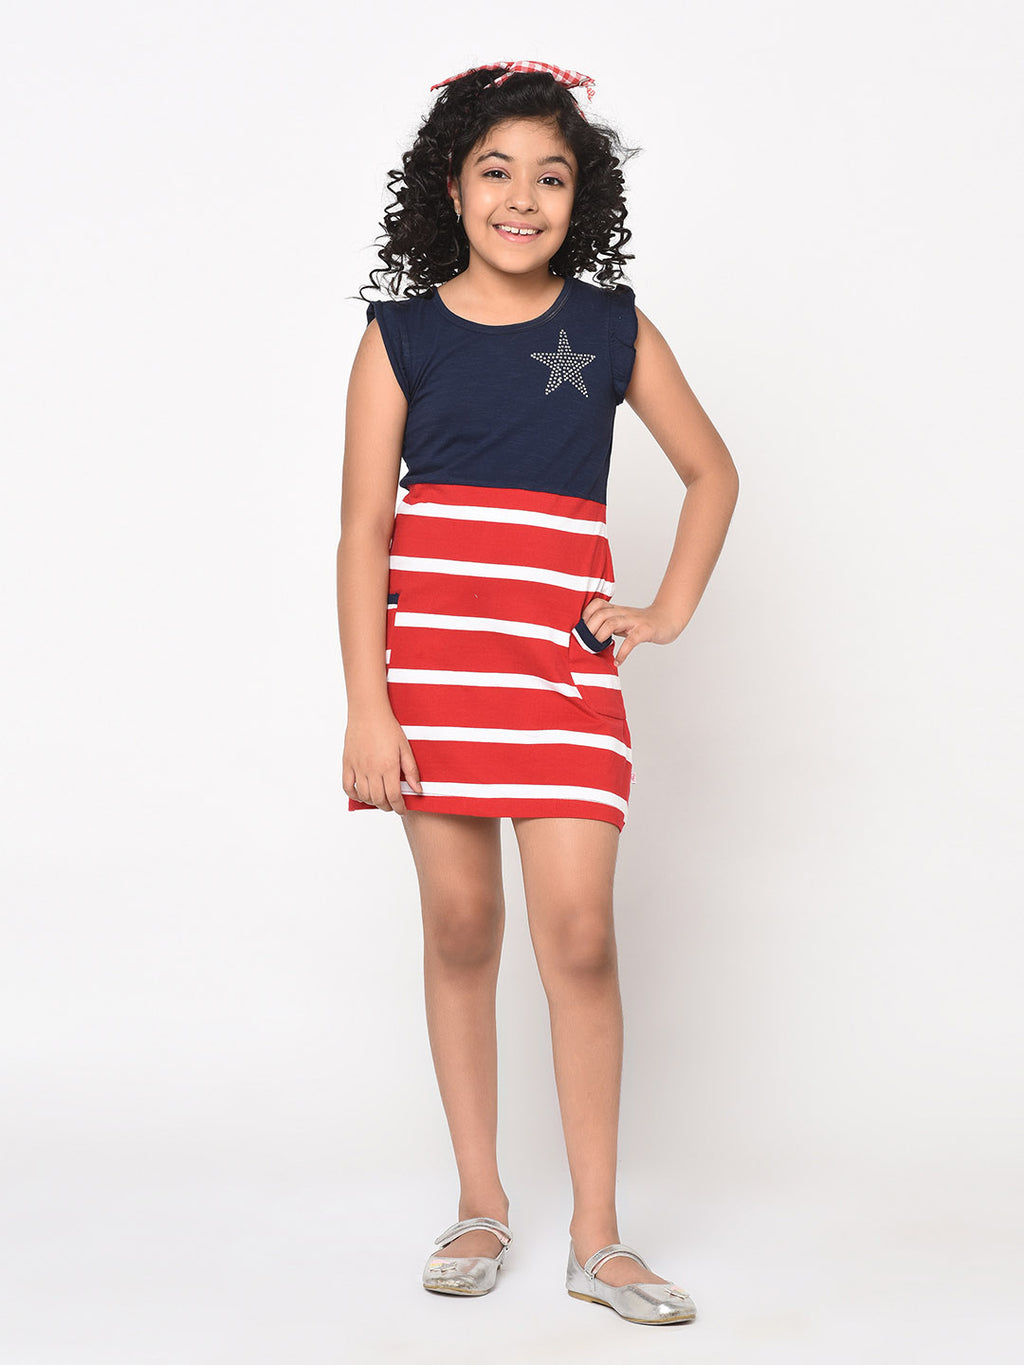 Bow Back Striped star rhinestone dress